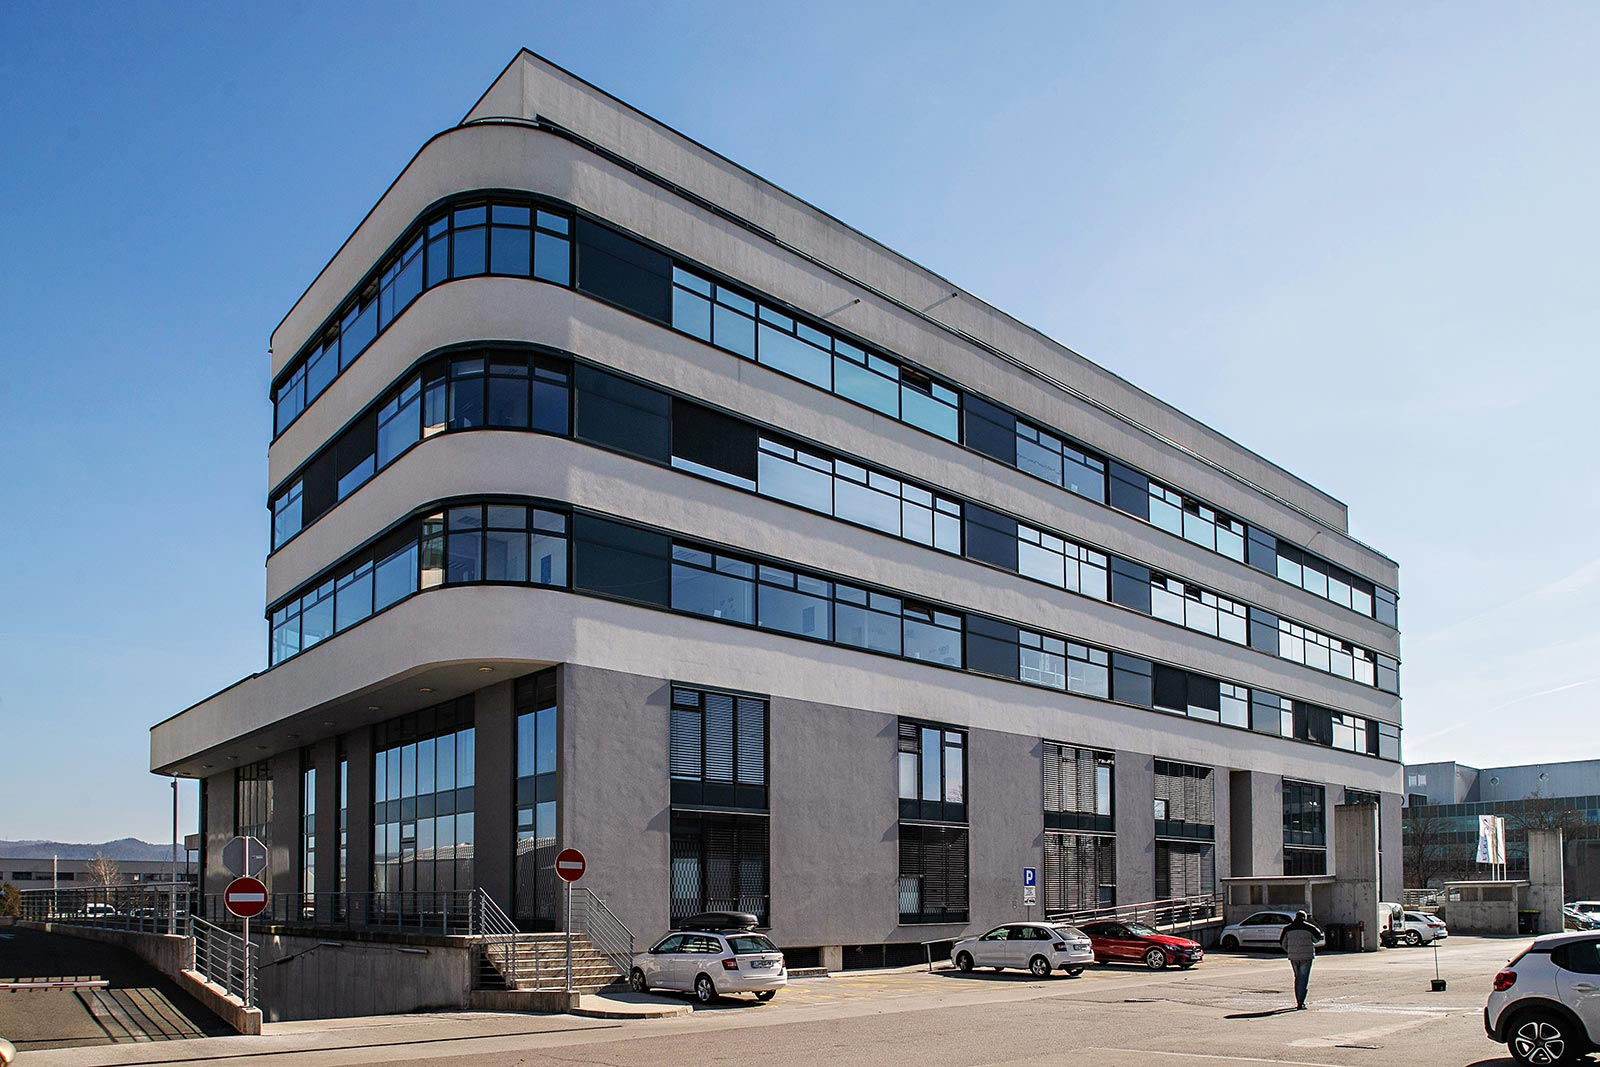 Trigal purchased one of the best multi-tenant office assets